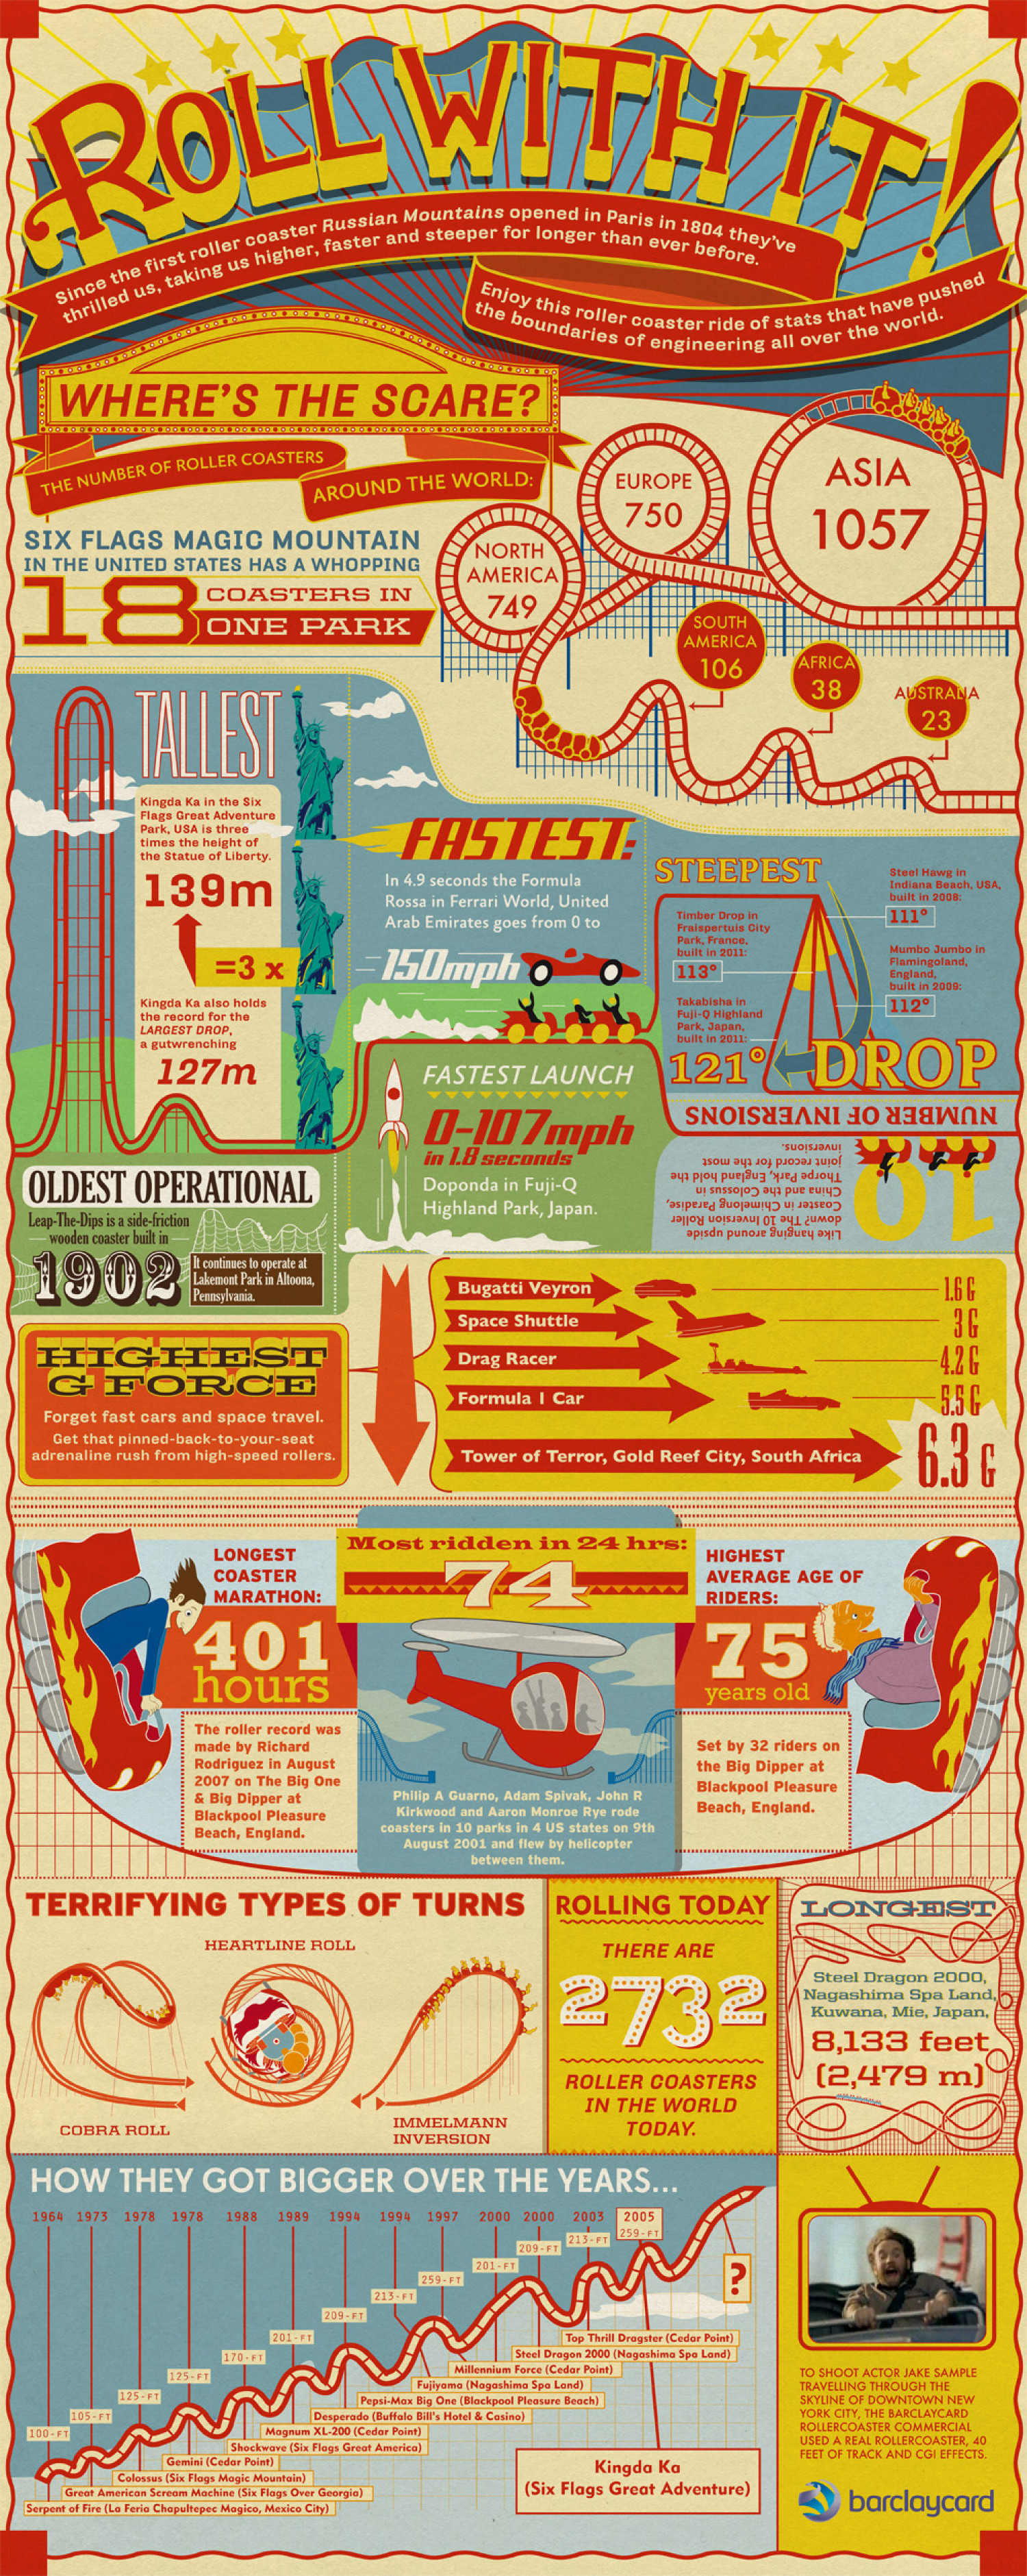 Roll With It! Infographic